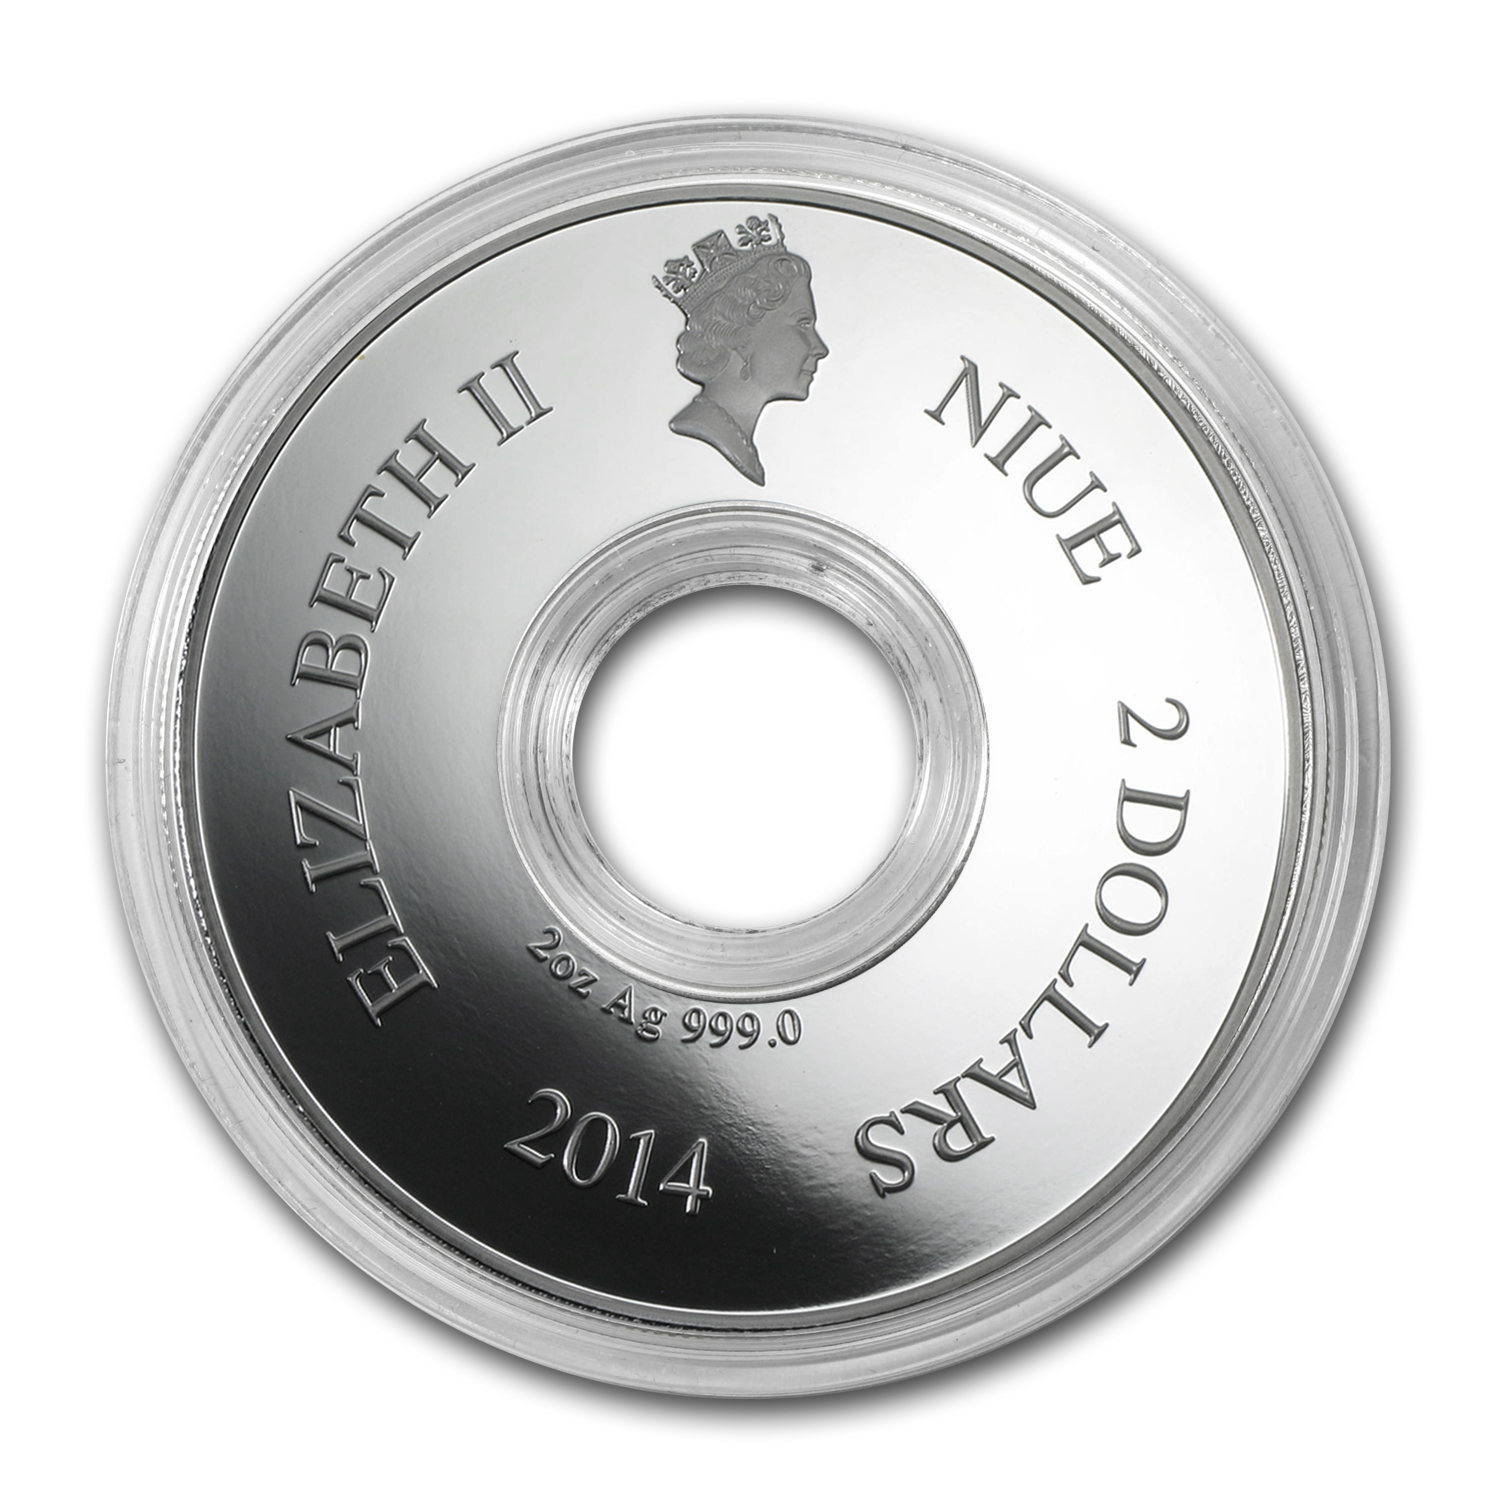 2014 Niue Silver Year of the Horse Rotating Coin